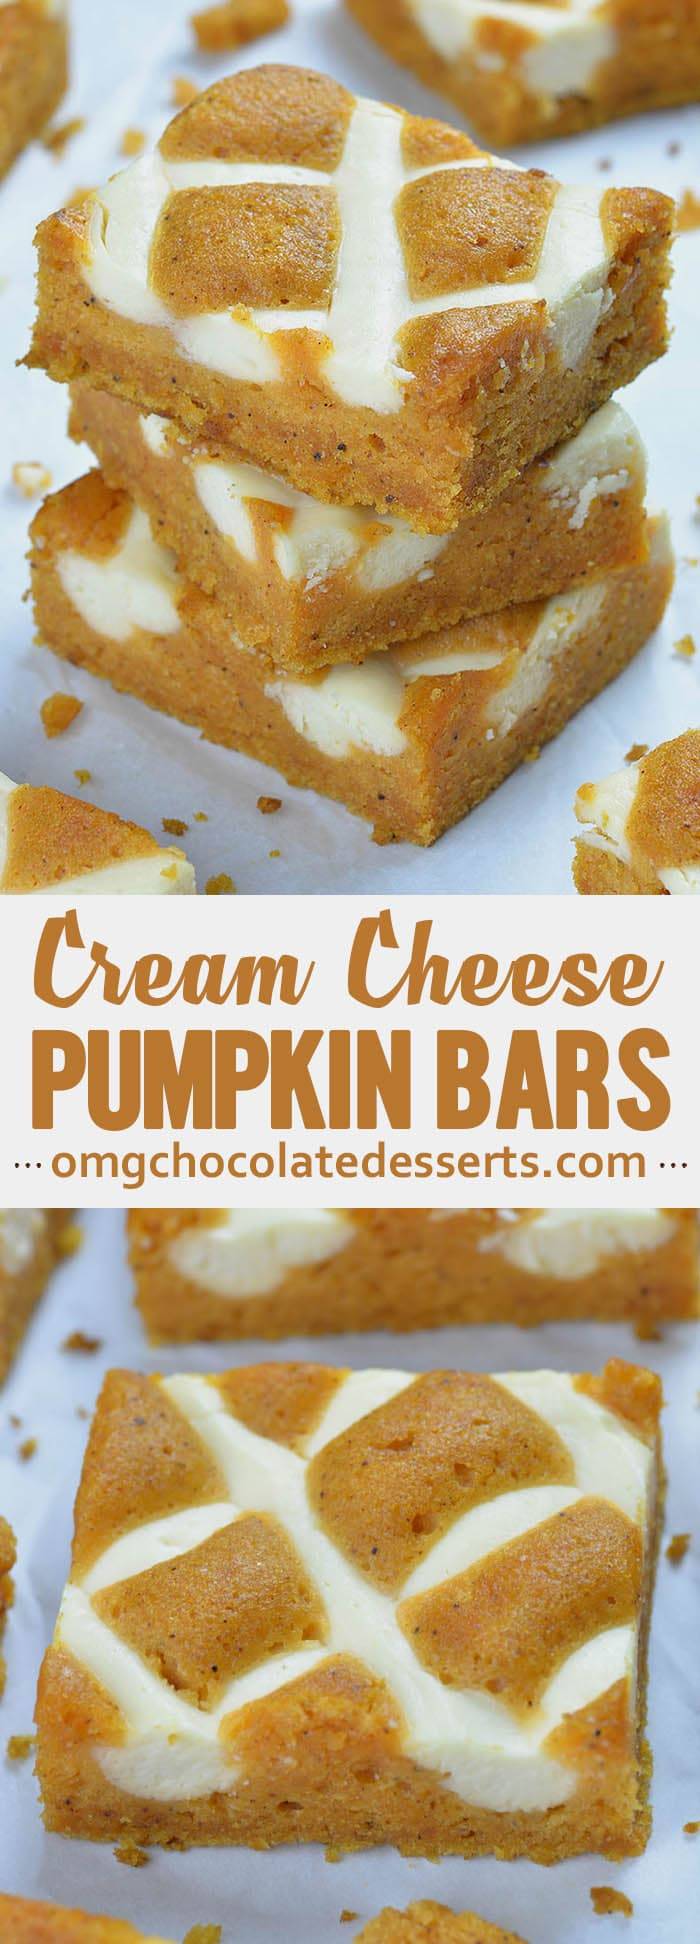 Pumpkin Bars with Cream Cheese is simple and easy dessert recipe for fall baking season, especially to be served as a dessert at Halloween party or as light and easy dessert after Thanksgiving dinner.